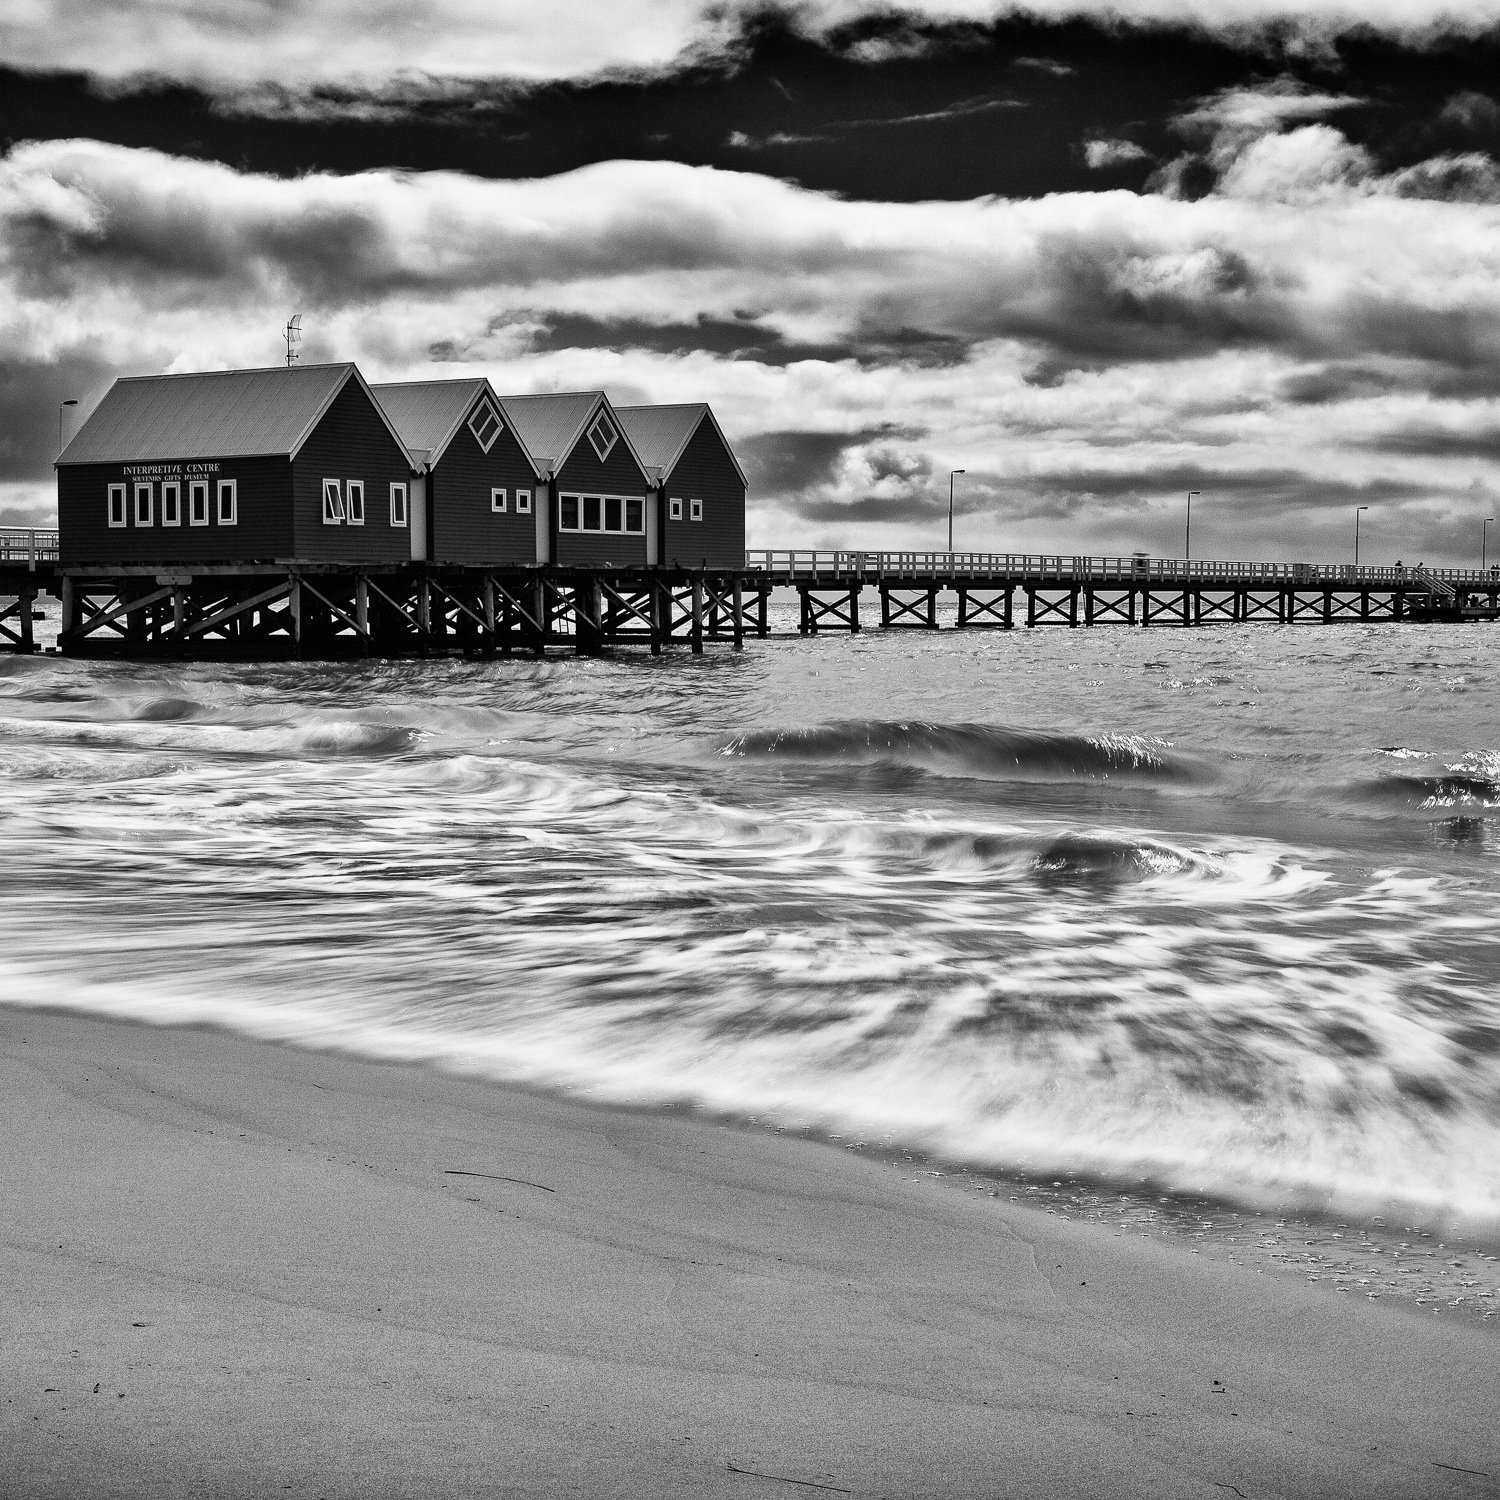 Motion_Busselton-Jetty_Busselton_South-West_WA_Black and White